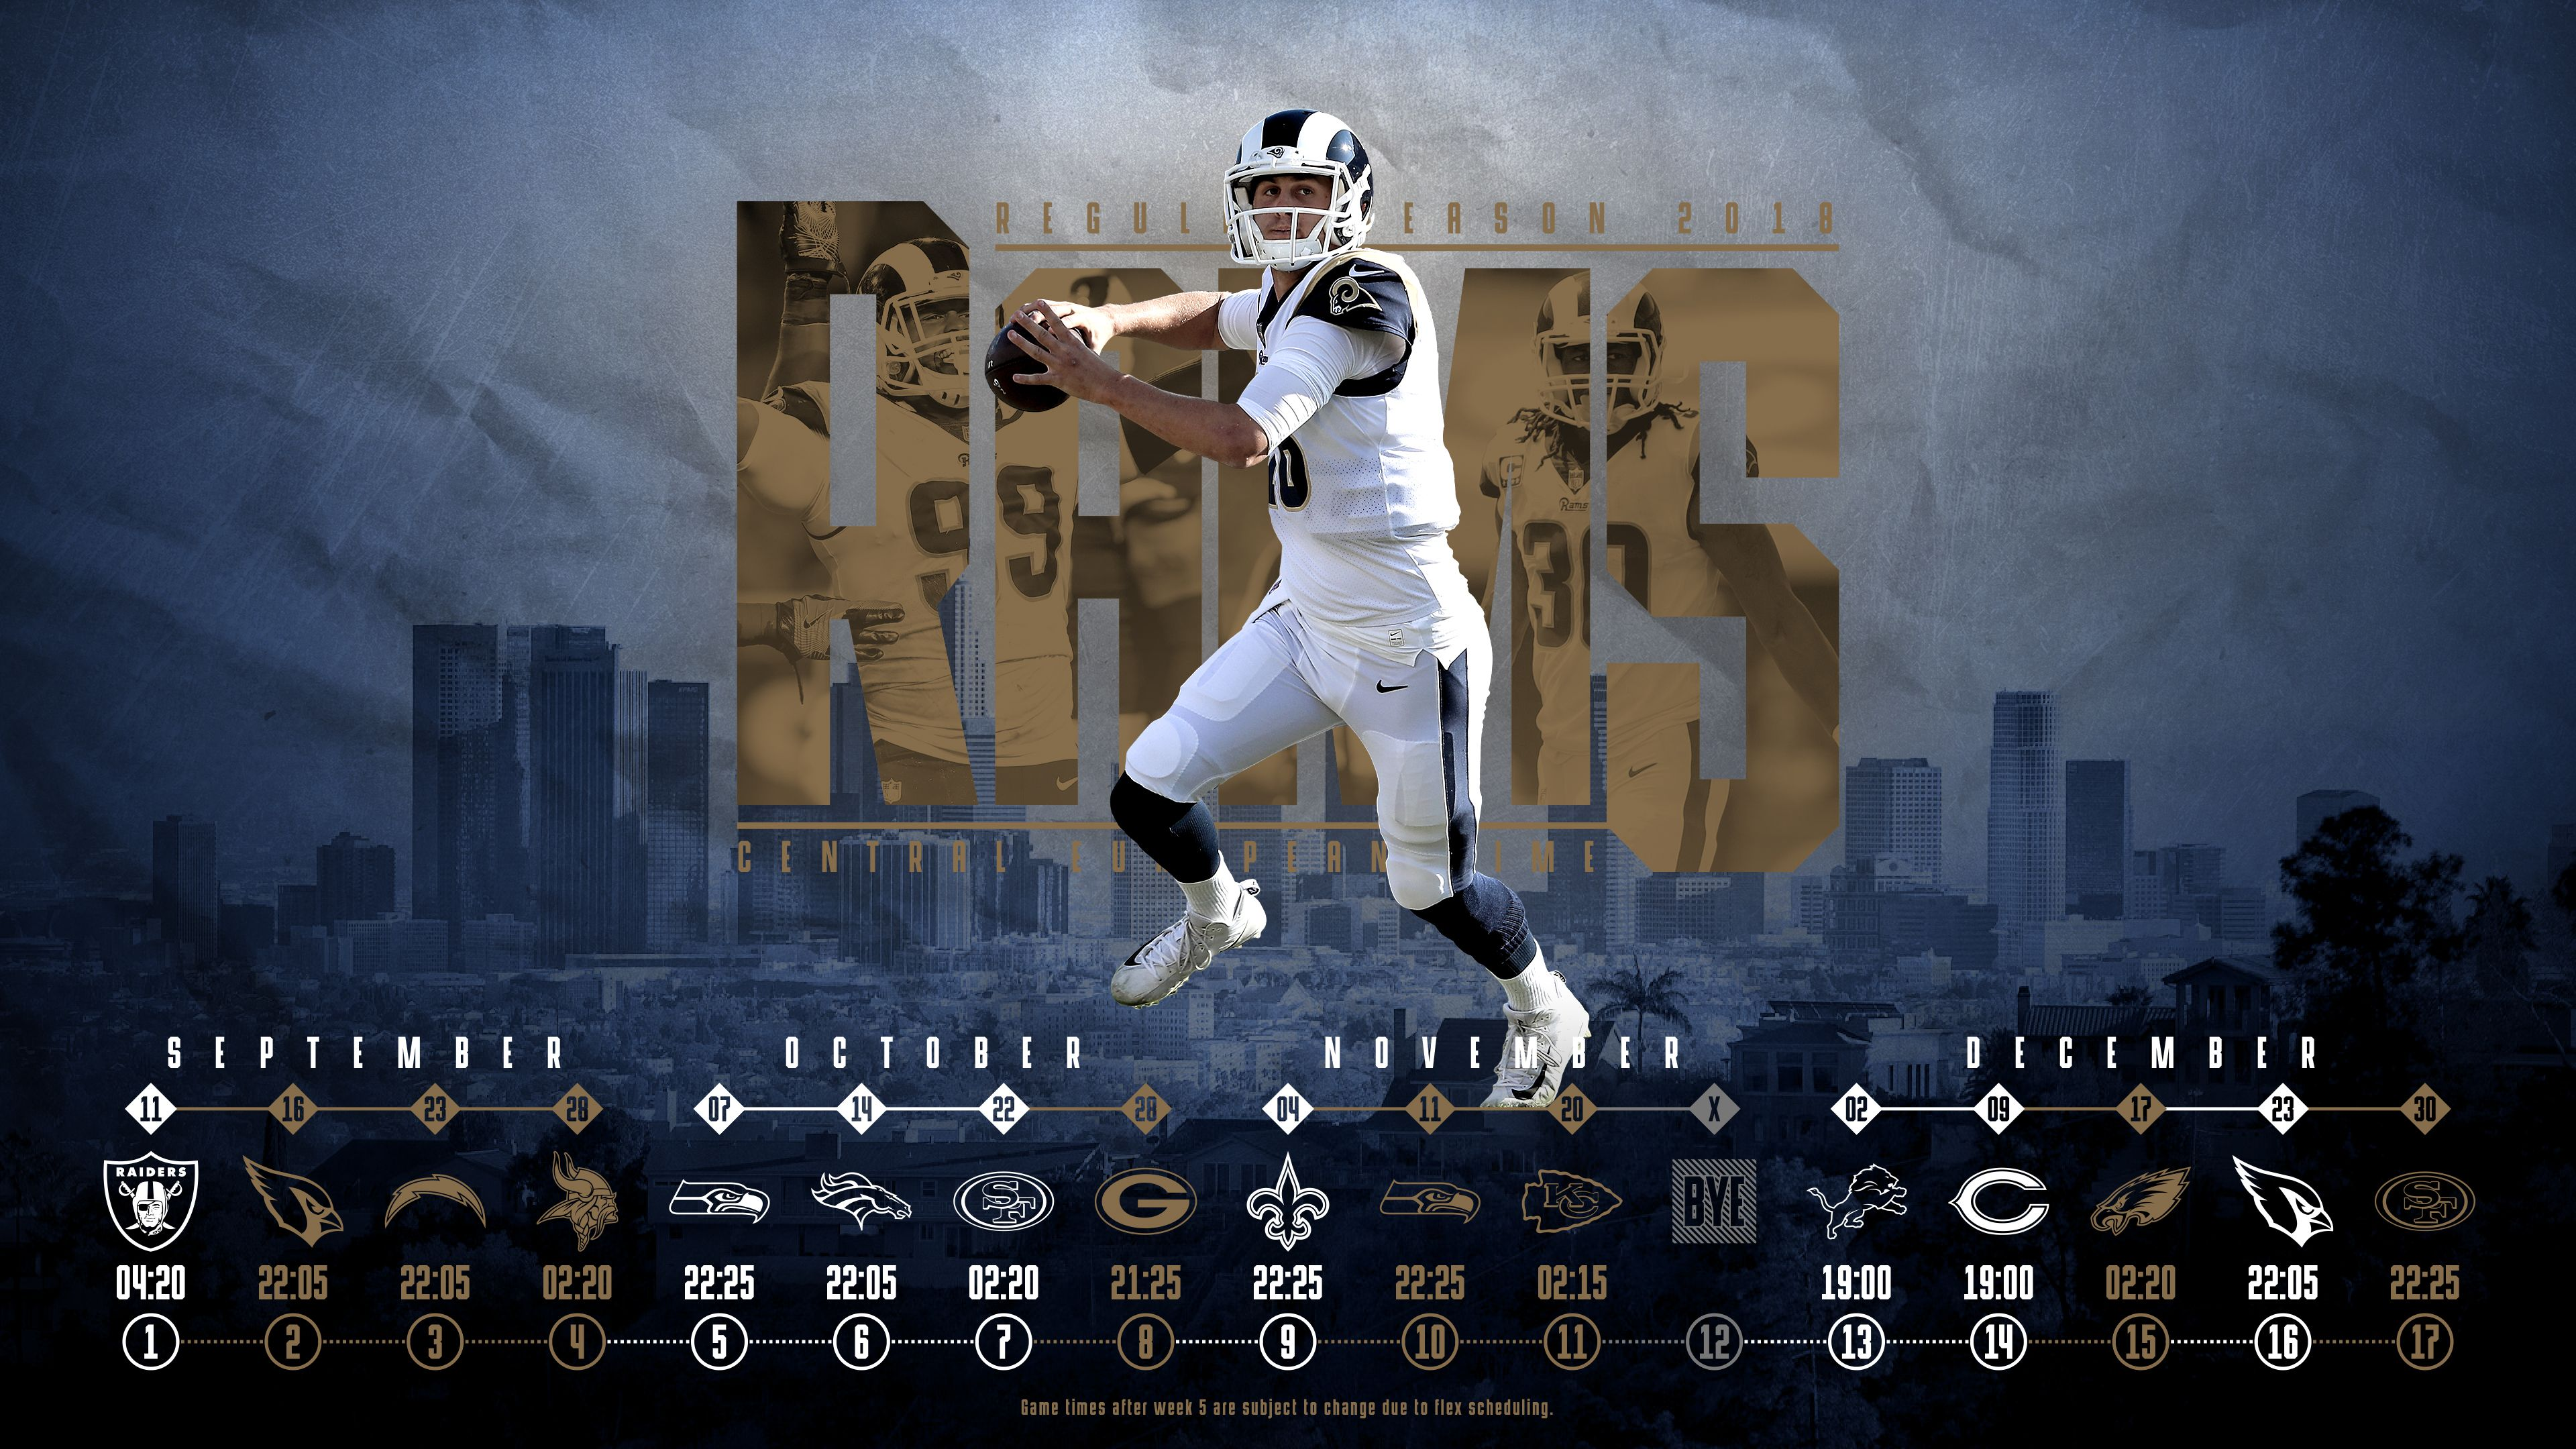 Schedule Wallpaper For The Los Angeles Rams Regular Season 2018 Central European Time Made By Tobler Gergo Tgersdiy Los Angeles Rams Nfl Los Angeles